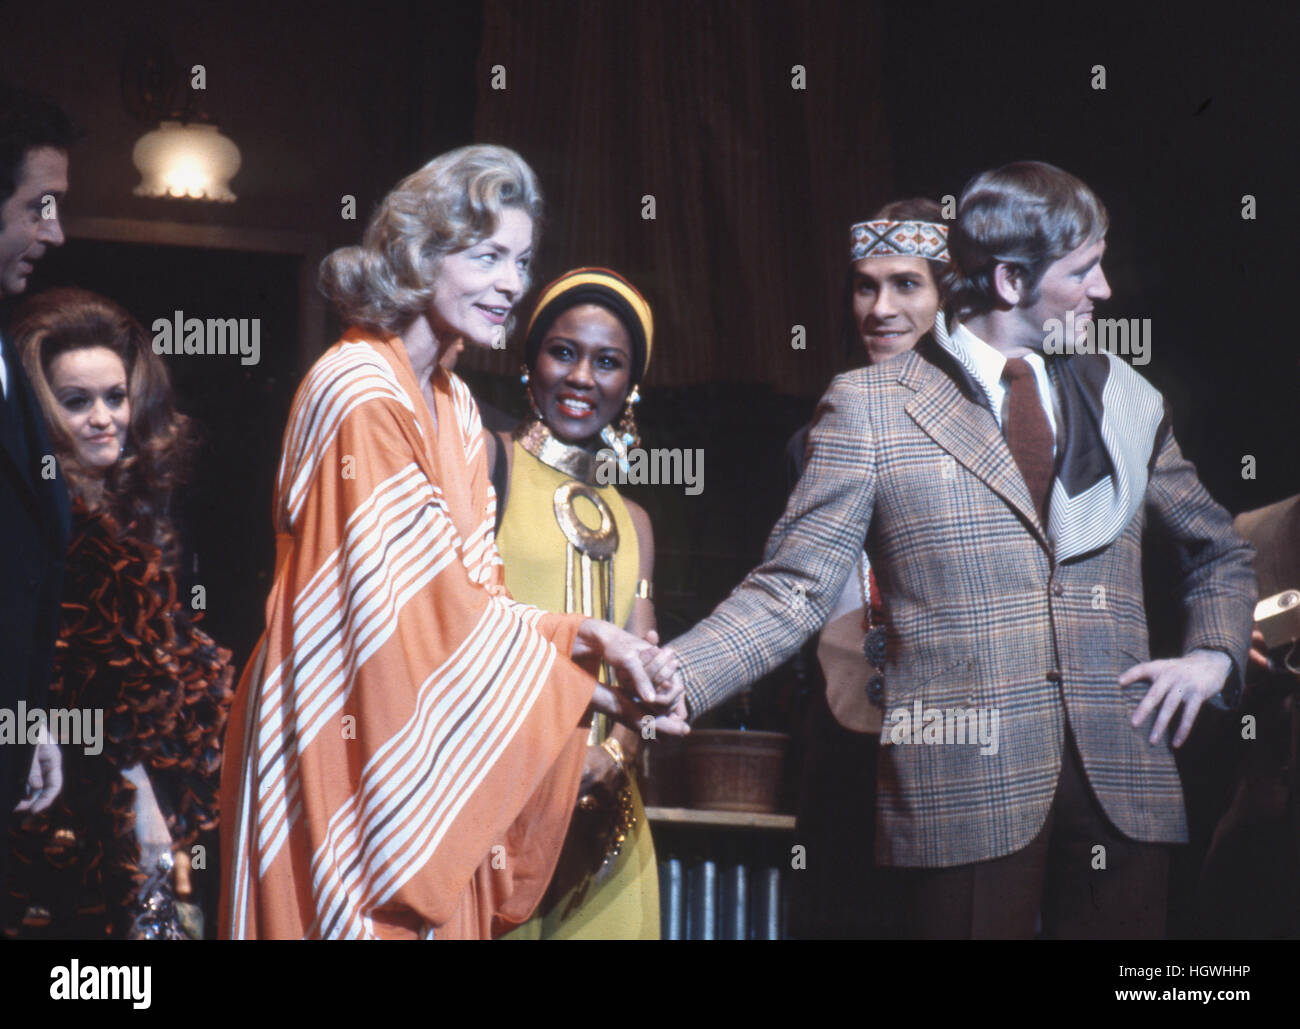 Len Cariou (right side, wearing jacket) and Lauren Bacall, on stage in the 1970 Broadway musical Applause. - Stock Image